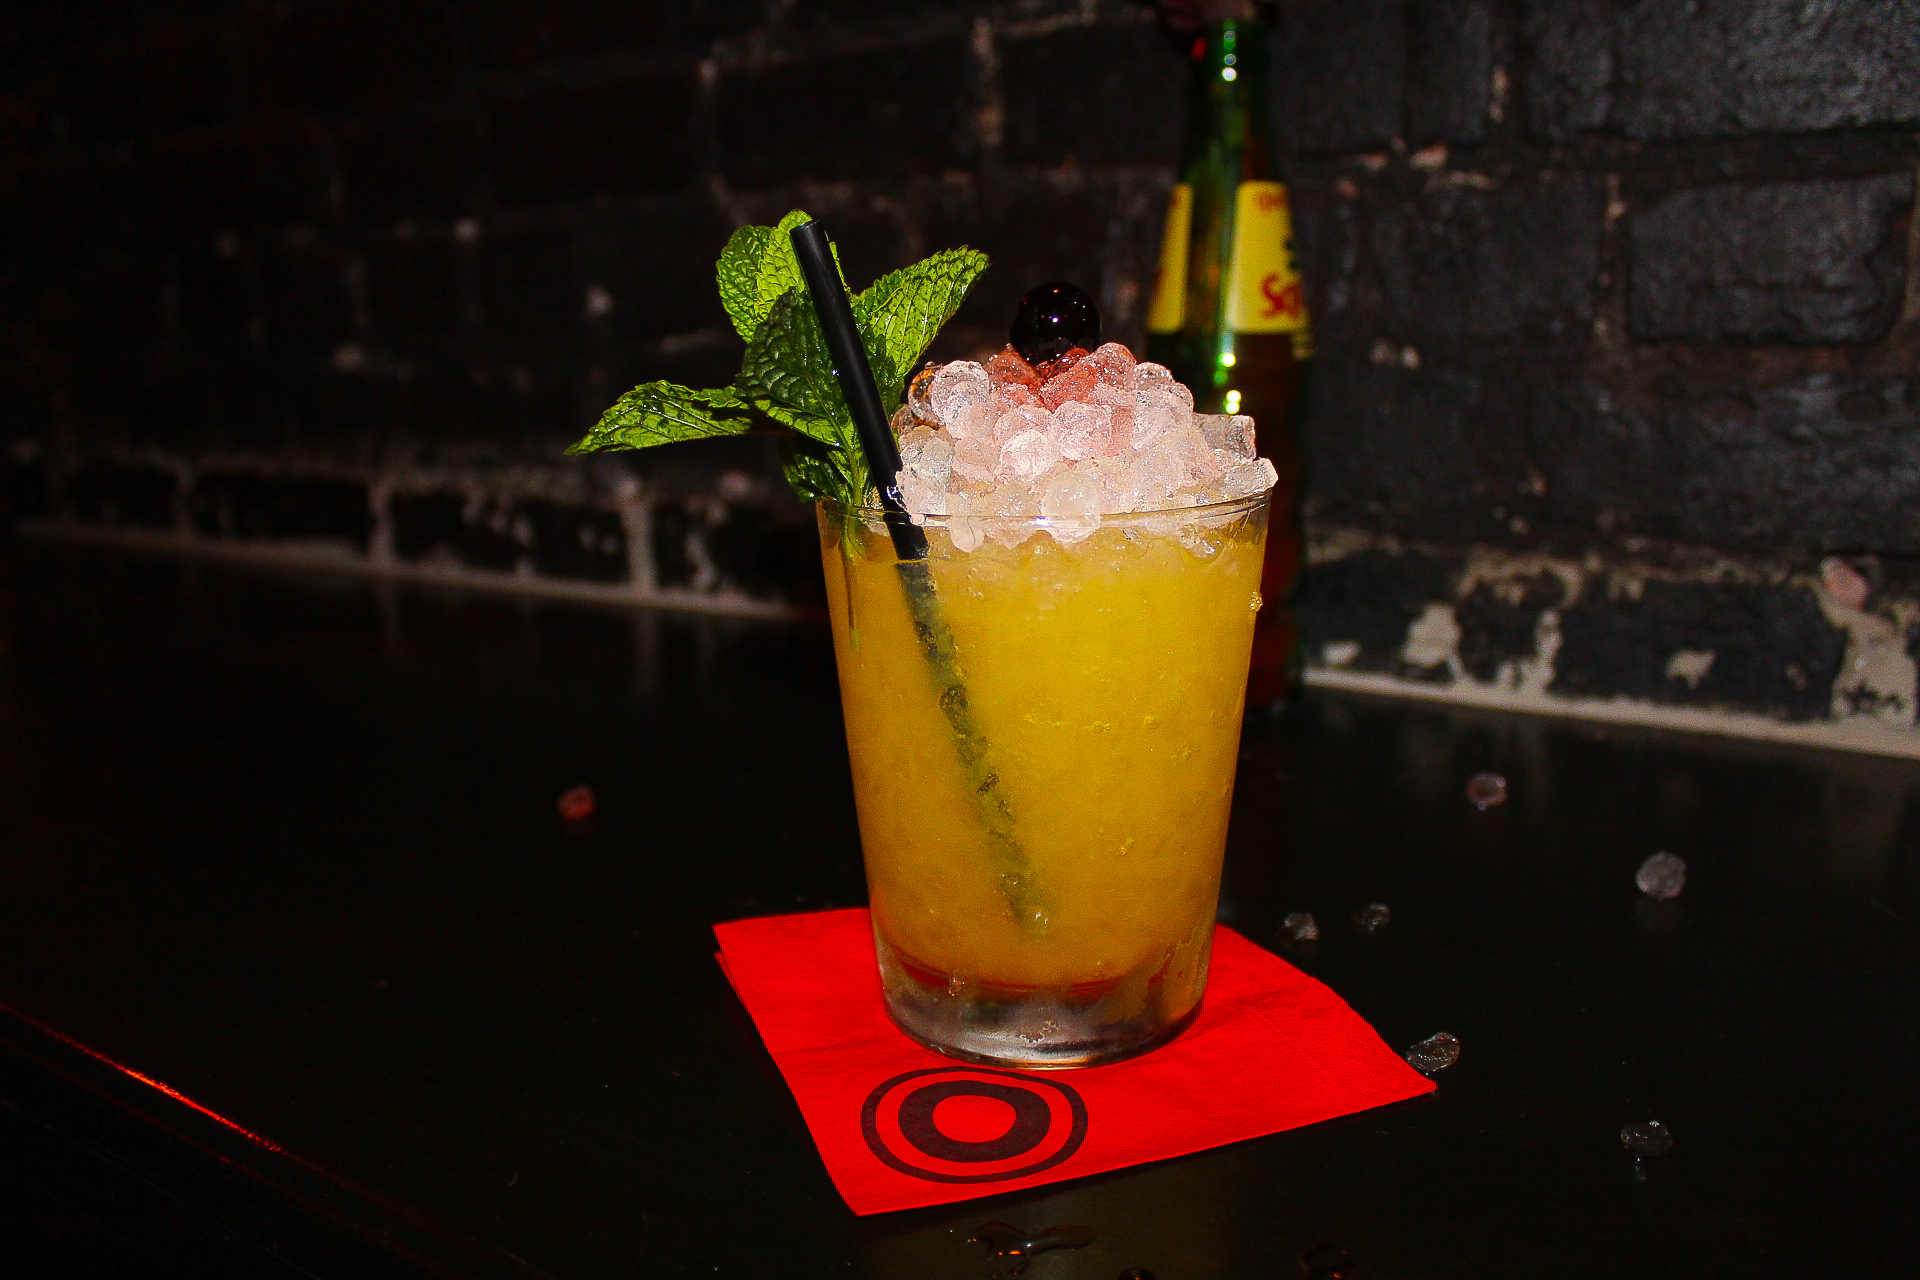 Pleasant Avenue - gin based drink with an apricot liquer